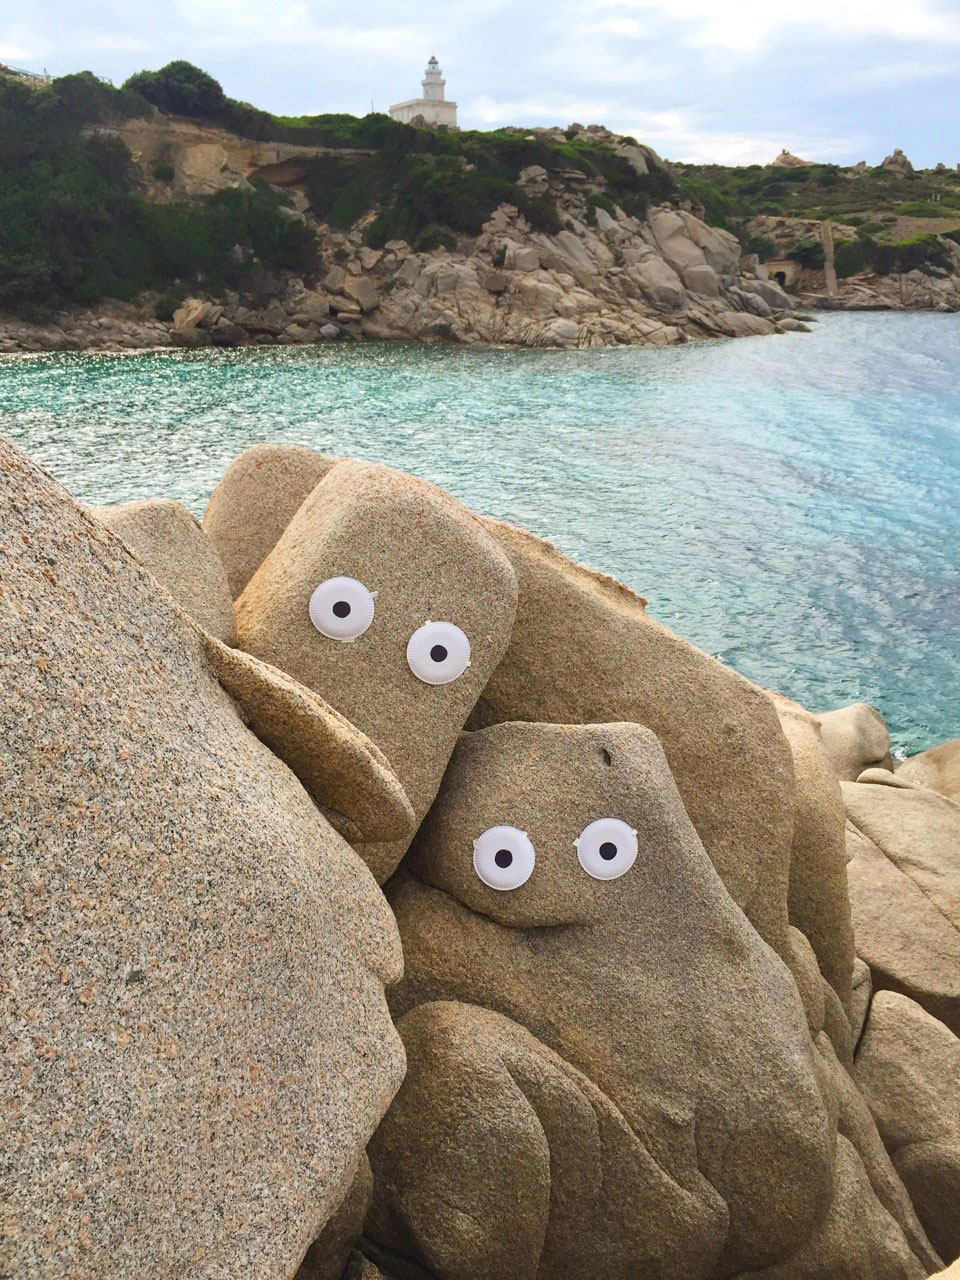 Unas rocas having a face